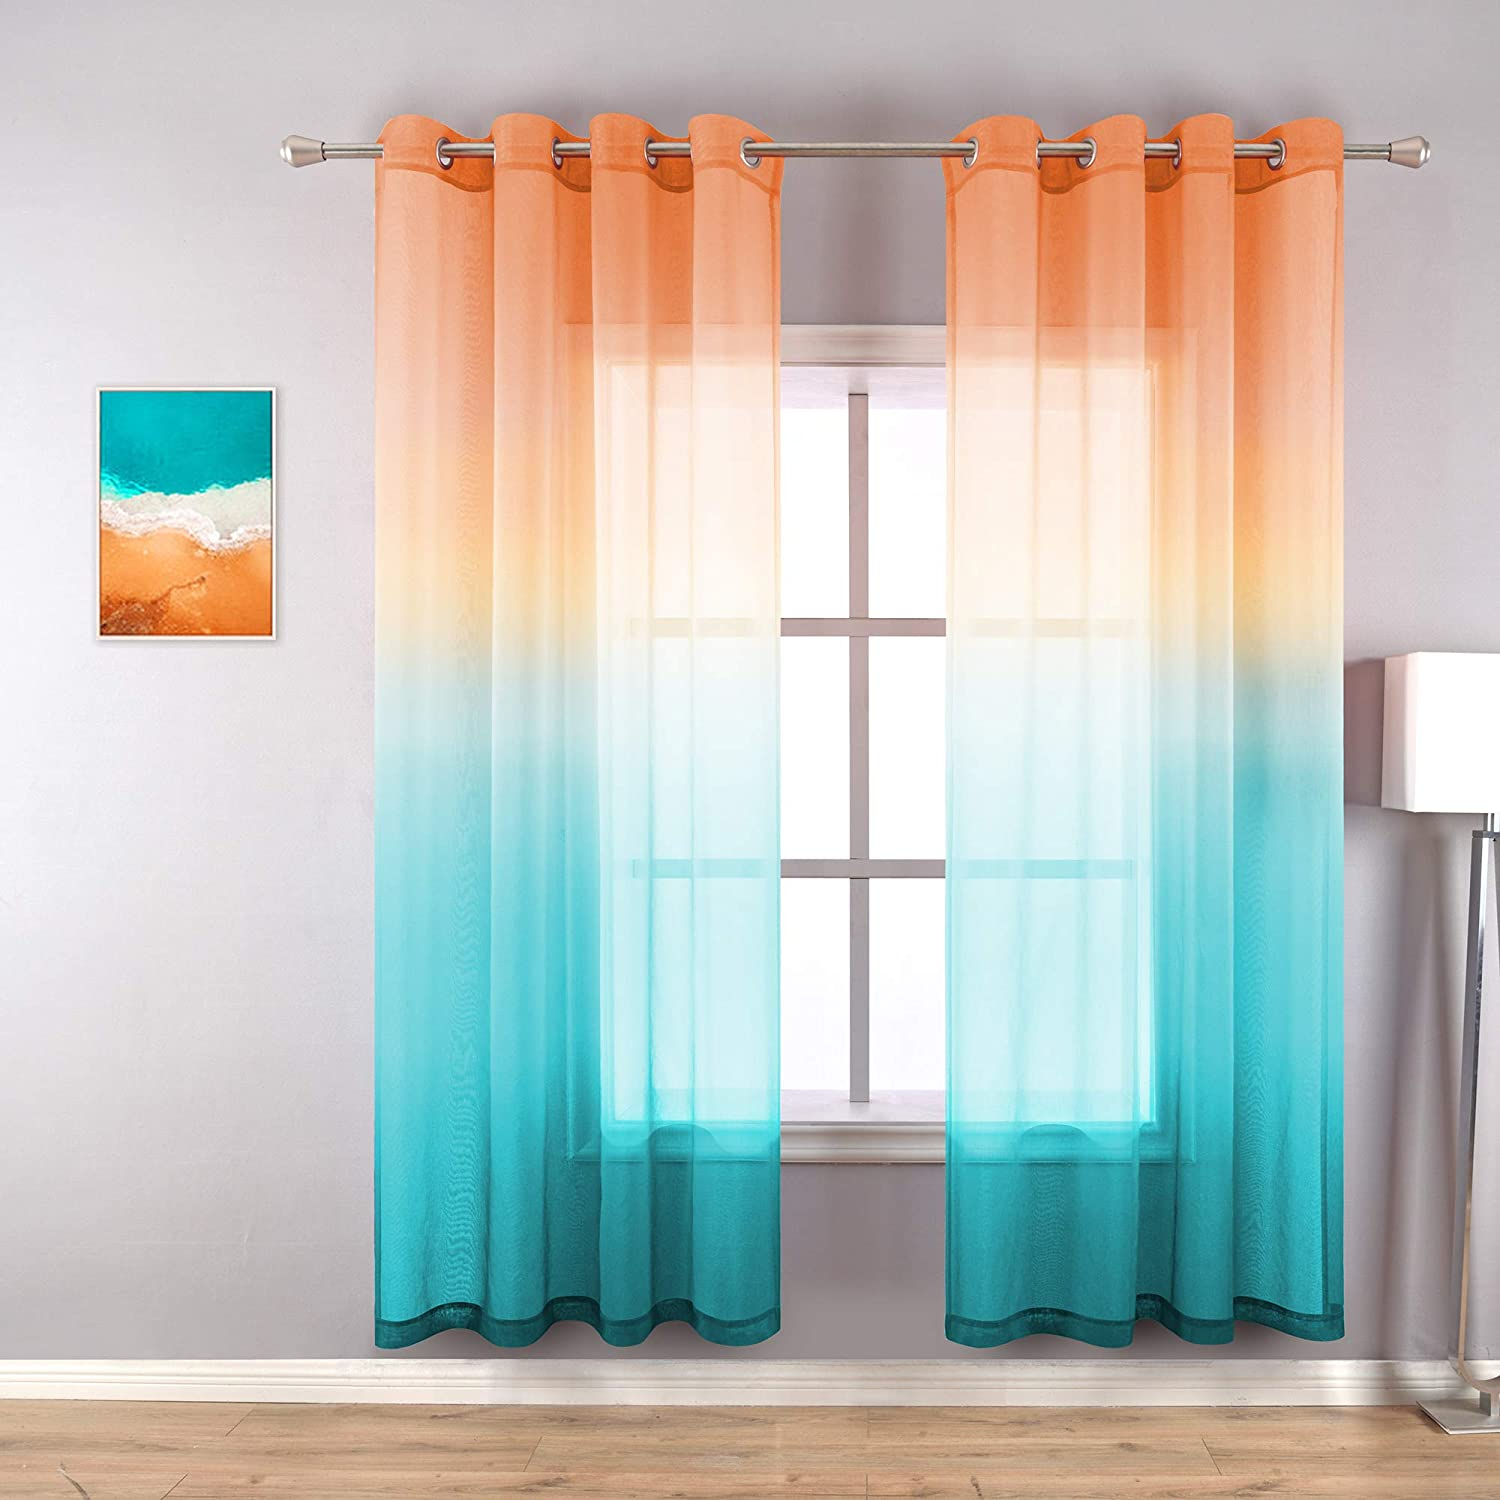 Orange Curtains 63 Inch Length for Bedroom Decor Set 2 Panel Grommet Sheer Drape Short Decorative Beach Curtains for Kitchen Window Decorations Kids Room Ombre Tangerine Aqua Teal Blue Turquoise Green